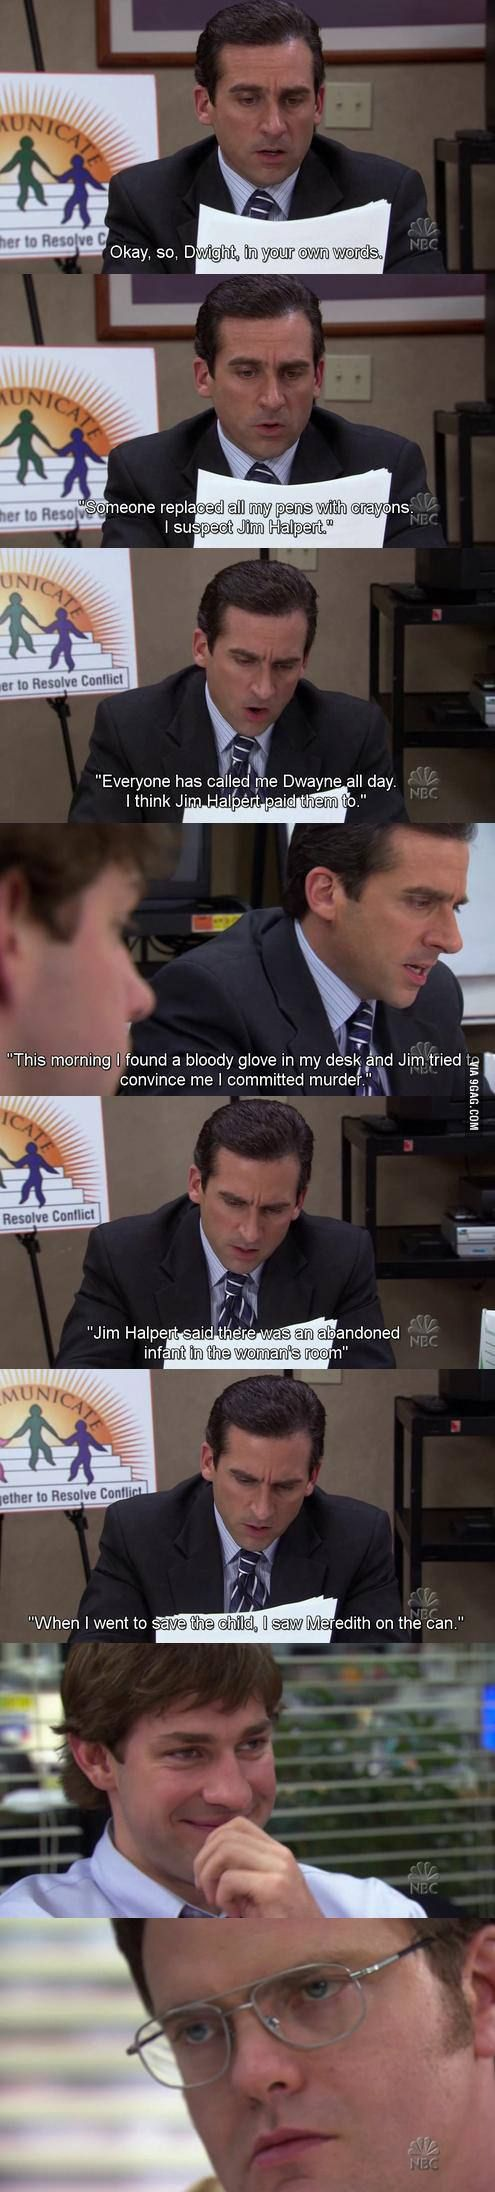 Best scene from the office. Jim and Dwight.